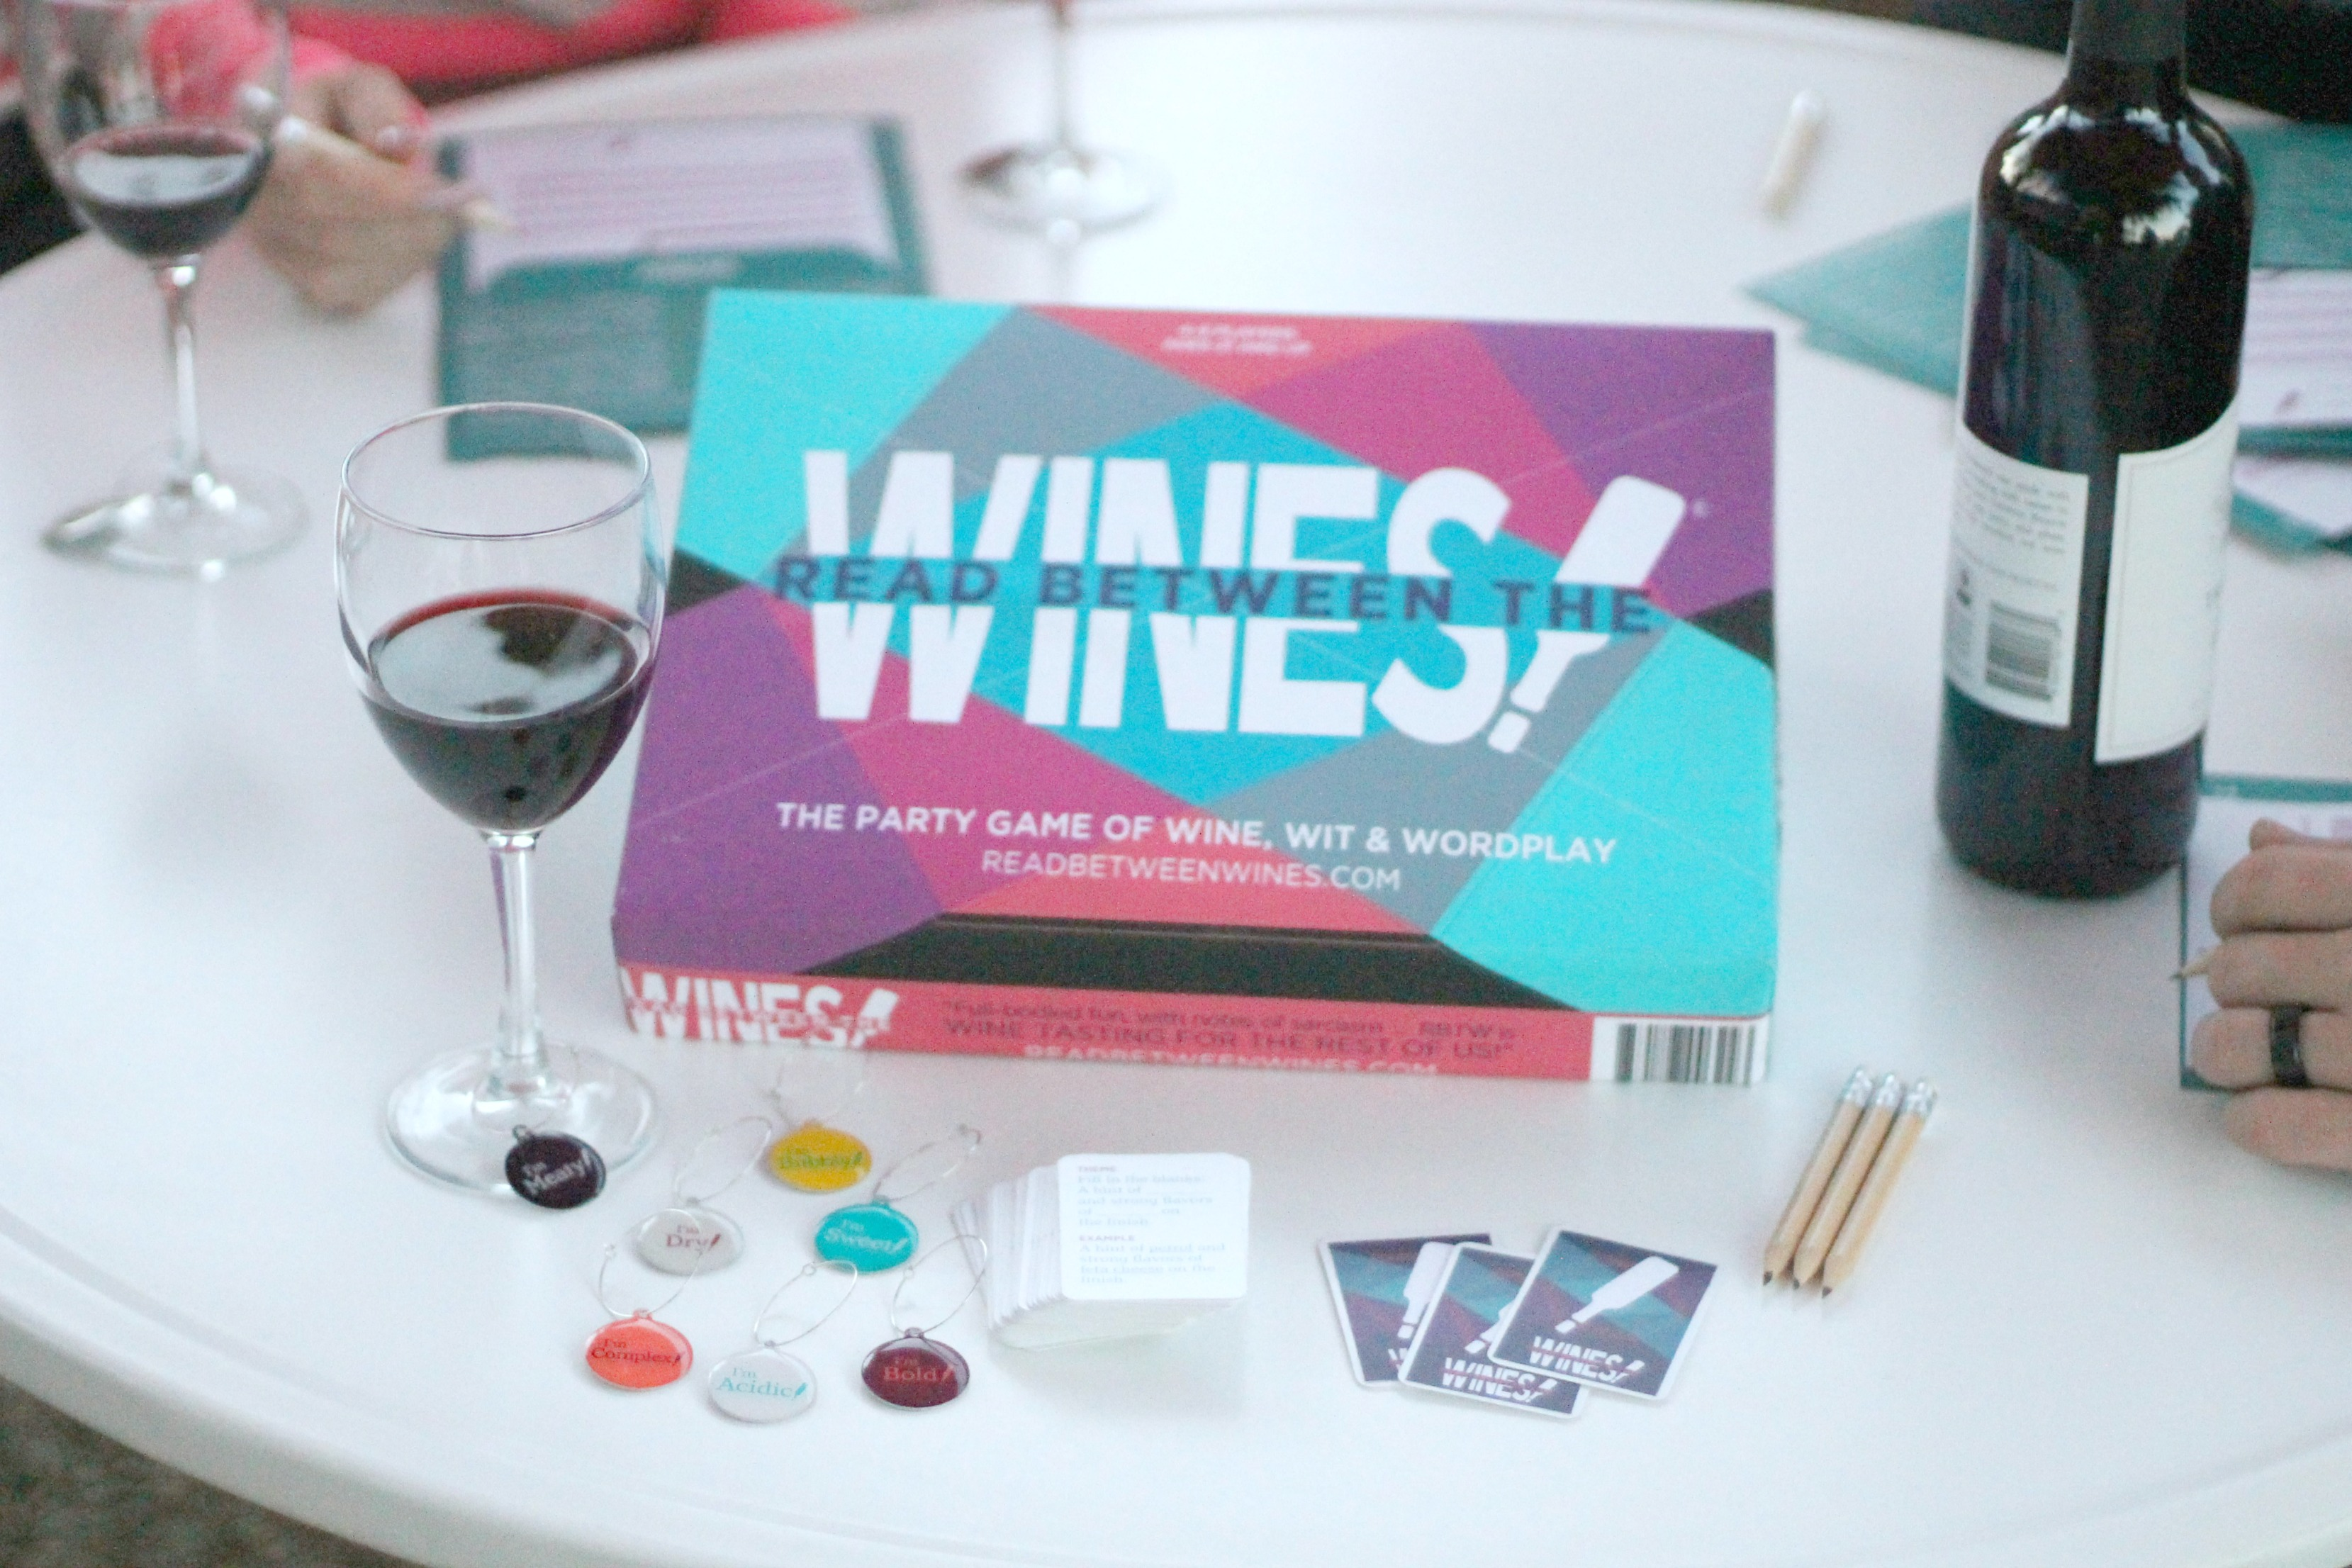 A fun board game, Read Between the Wines is shown on a table with glasses of wine and ladies gathered to play the board game.